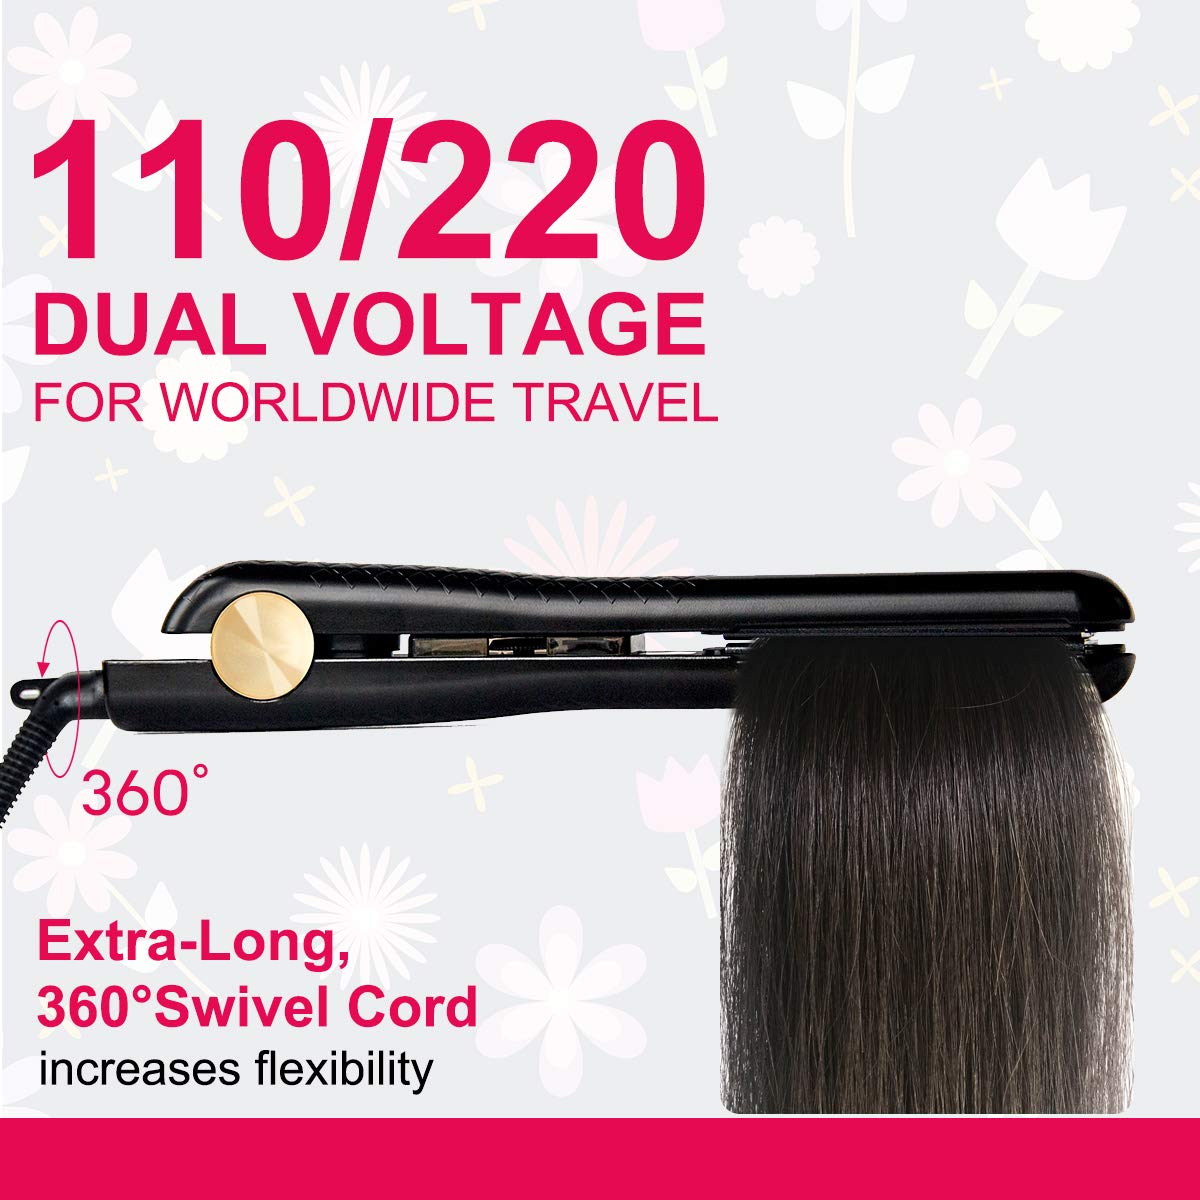 LANDOT Anti Static Hair Straightener Professional Tourmaline Ceramic Flat Iron with 1 inch Floating Plates Adjustable Temperature 140F to 465F for All Hair Types Dual Voltage Hair Styling Tools